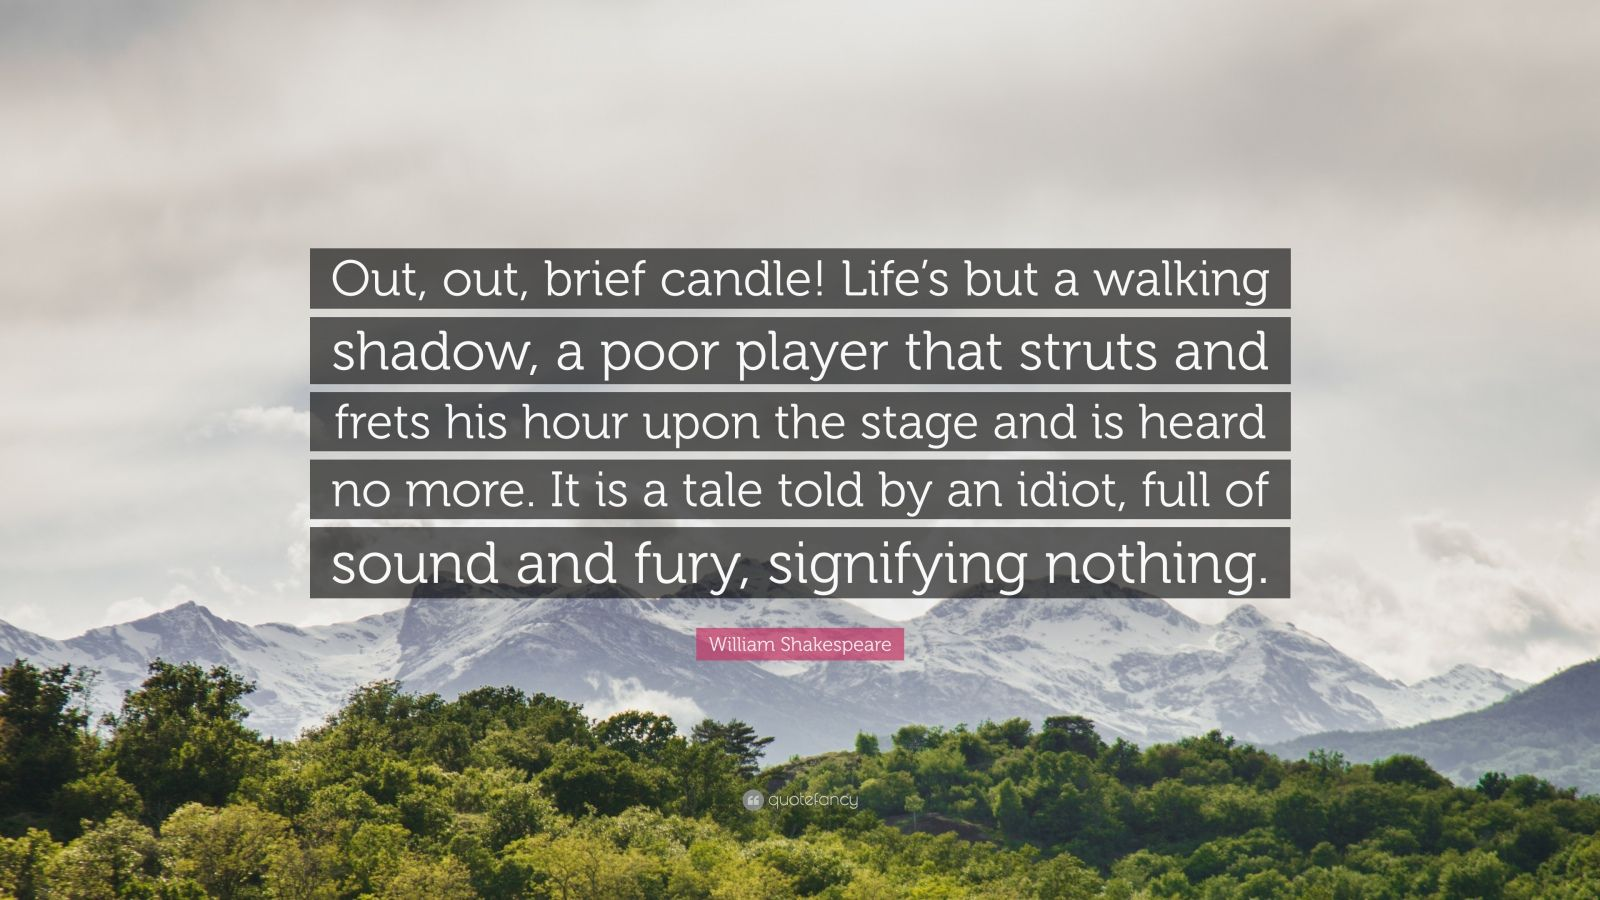 william shakespeare quotes 100  william shakespeare quote out out brief candle life s but a walking